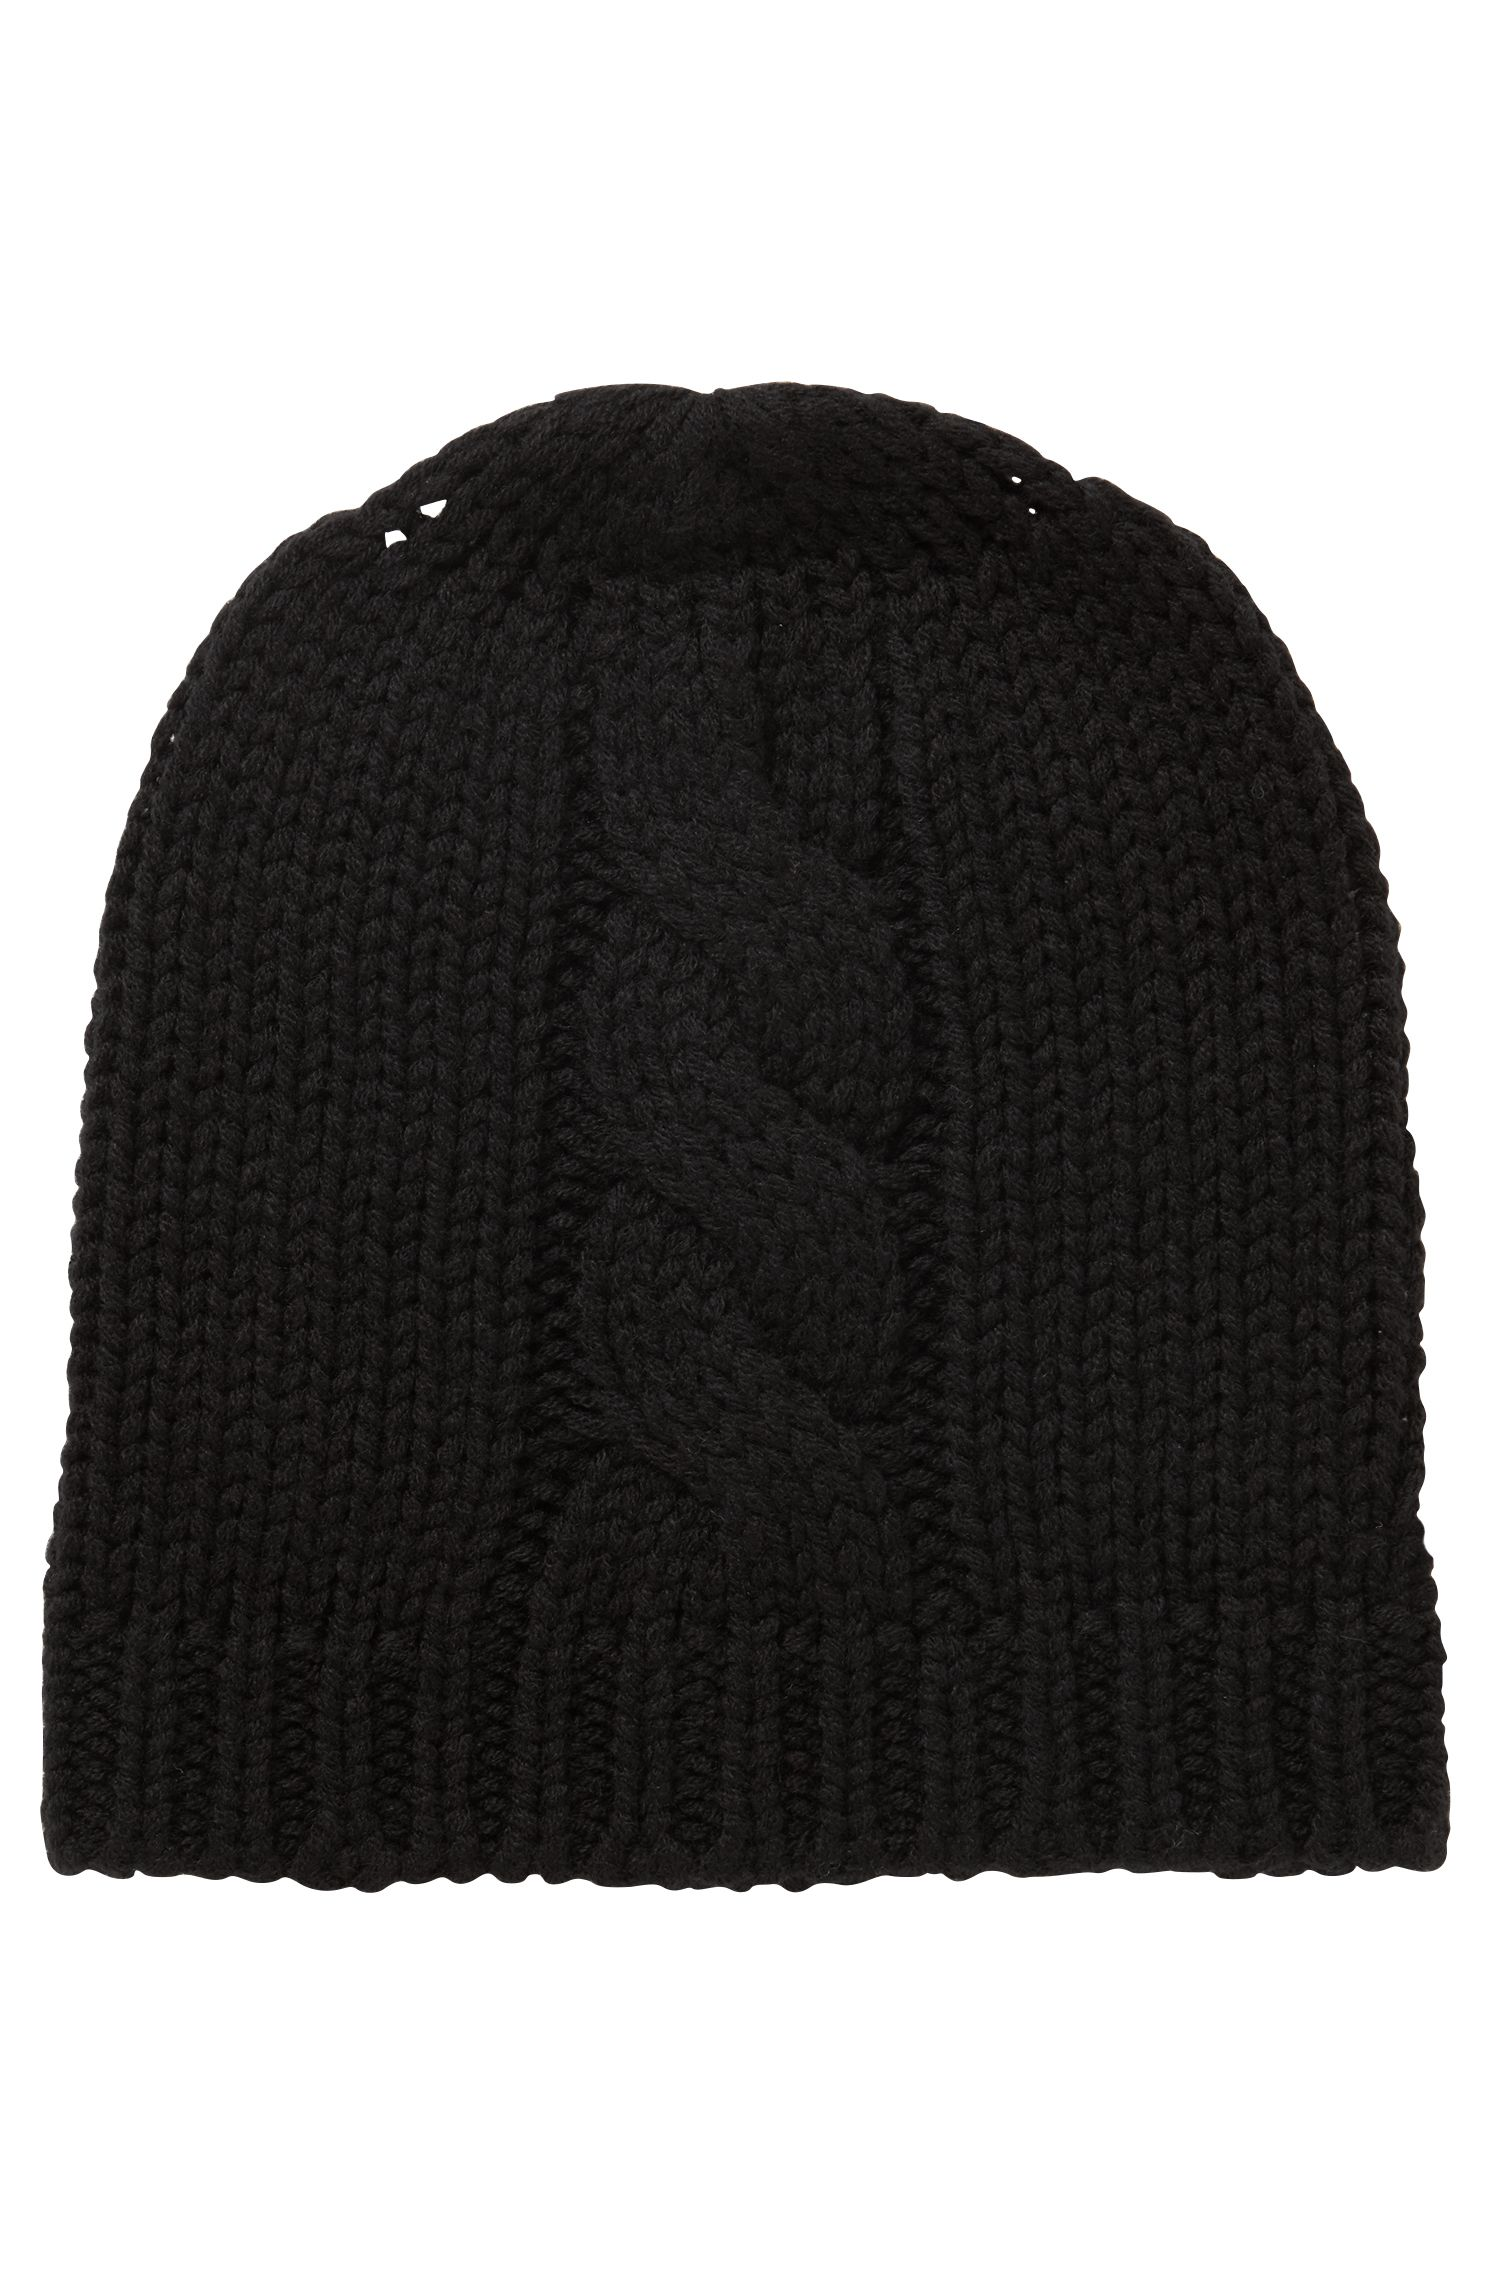 Beanie hat in a wool blend with cable structure, Black